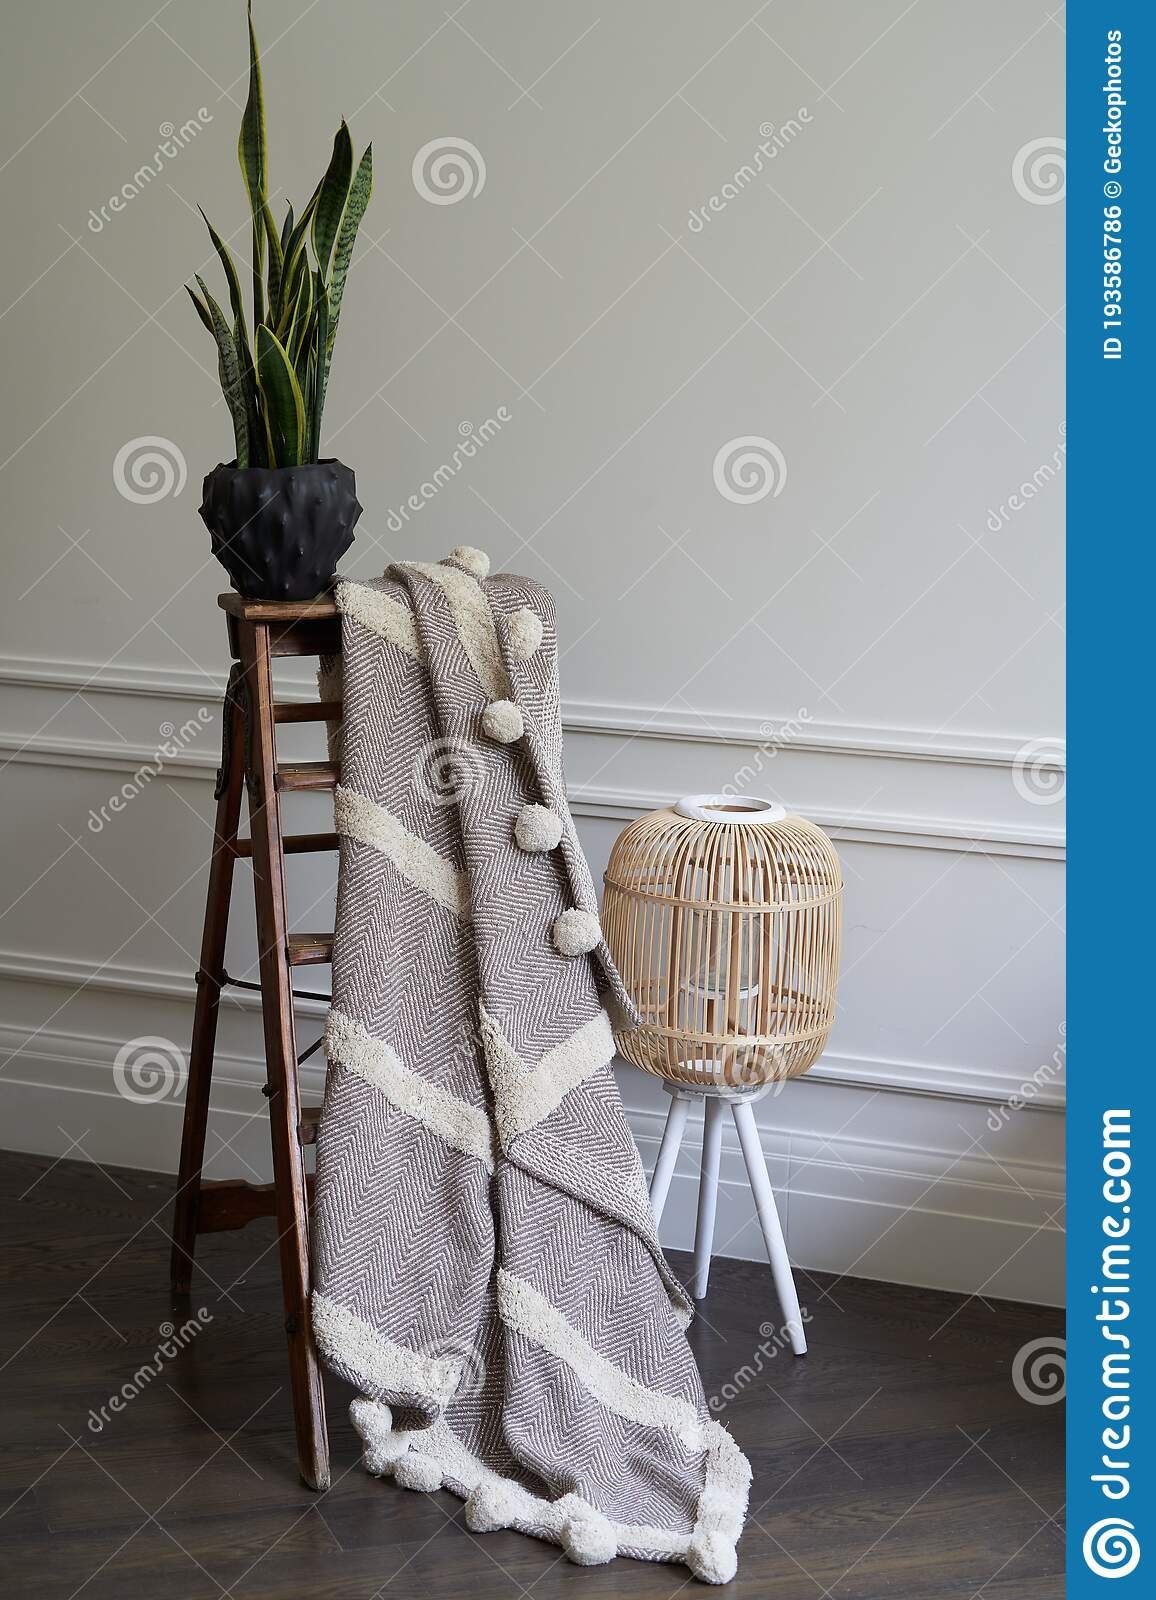 Warm Plaid Hanging On Decorative Ladder With Houseplant Stock Photo Image Of Warm Indoor 193586786